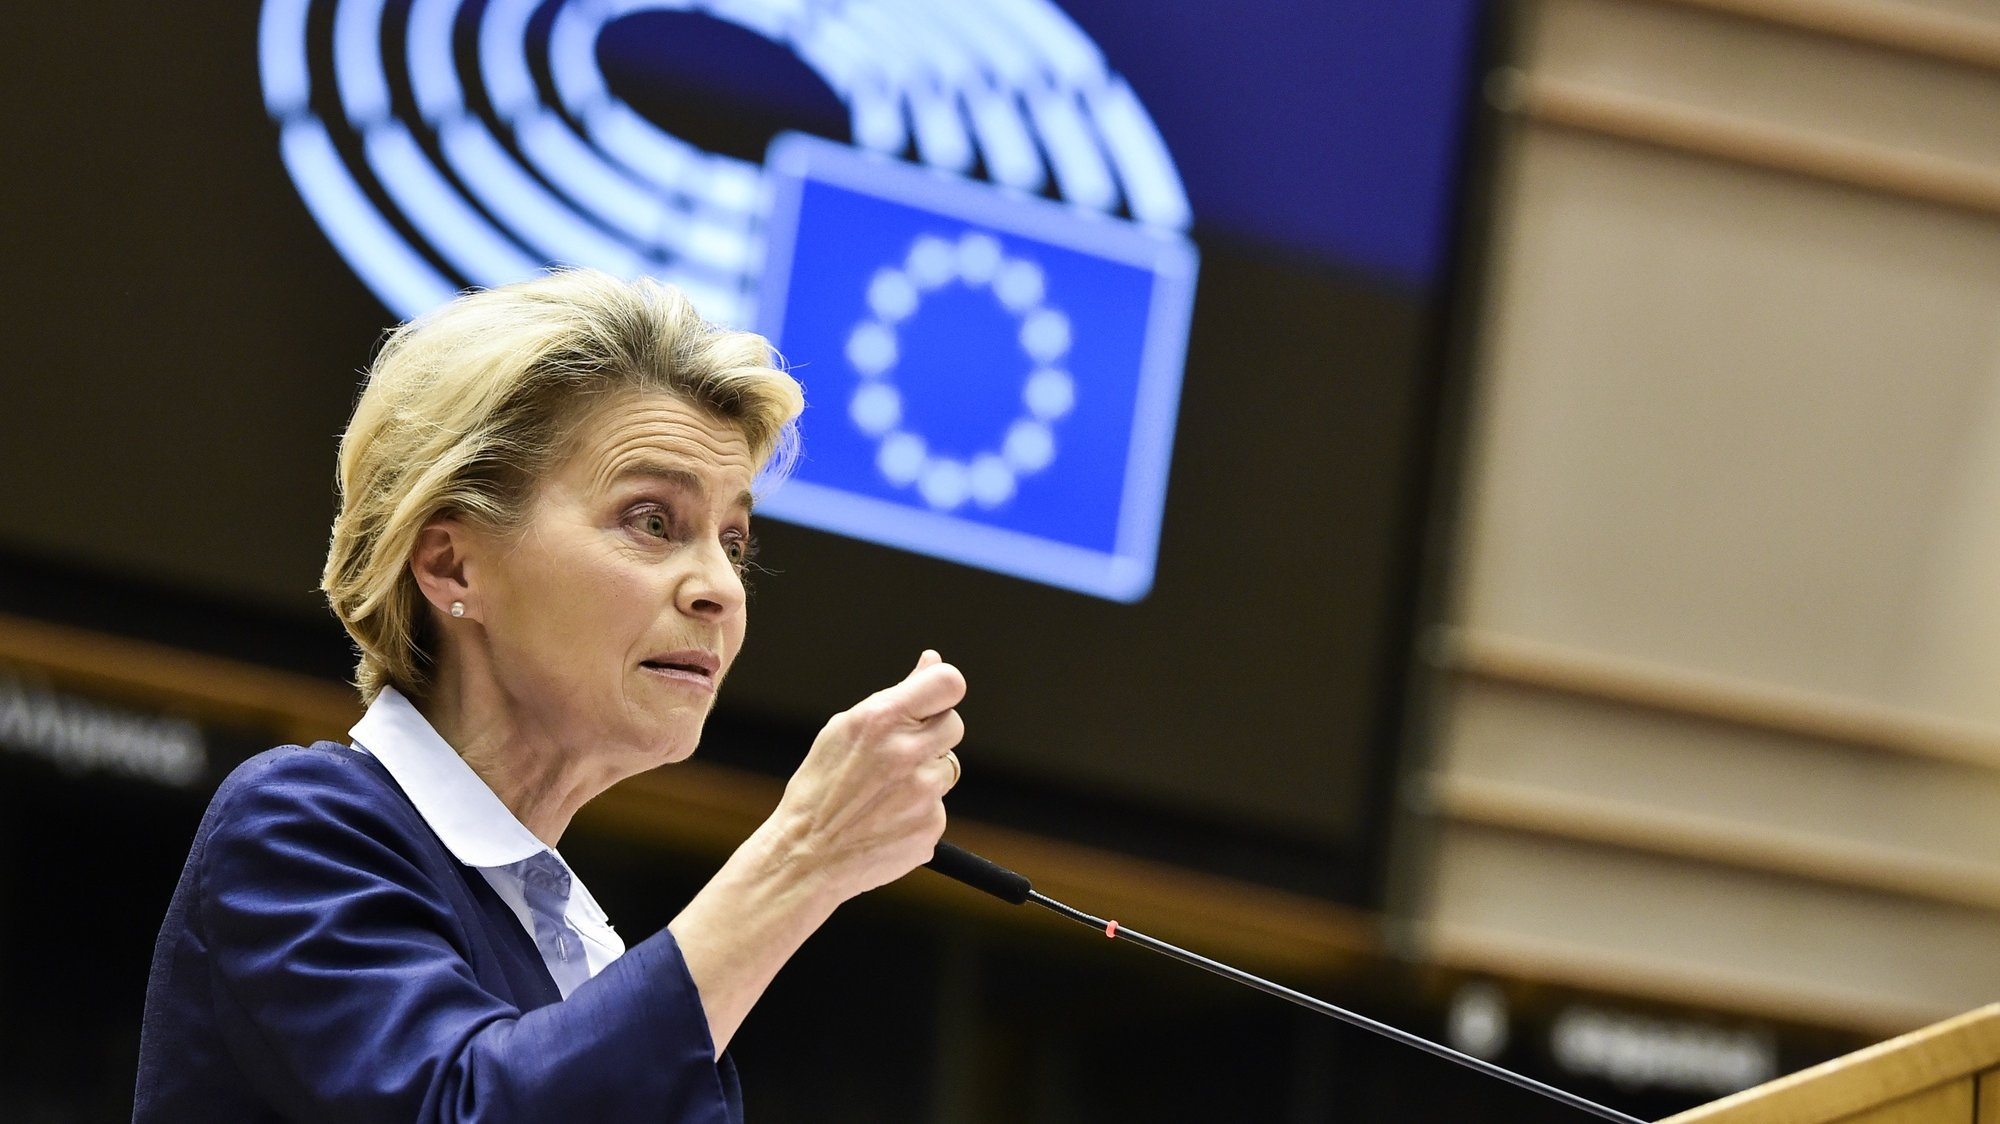 epa08887088 President of Commission Ursula von der Leyen delivers a speech during a session at European Parliament, in Brussels, Belgium, 16 December 2020.  EPA/JOHN THYS / POOL